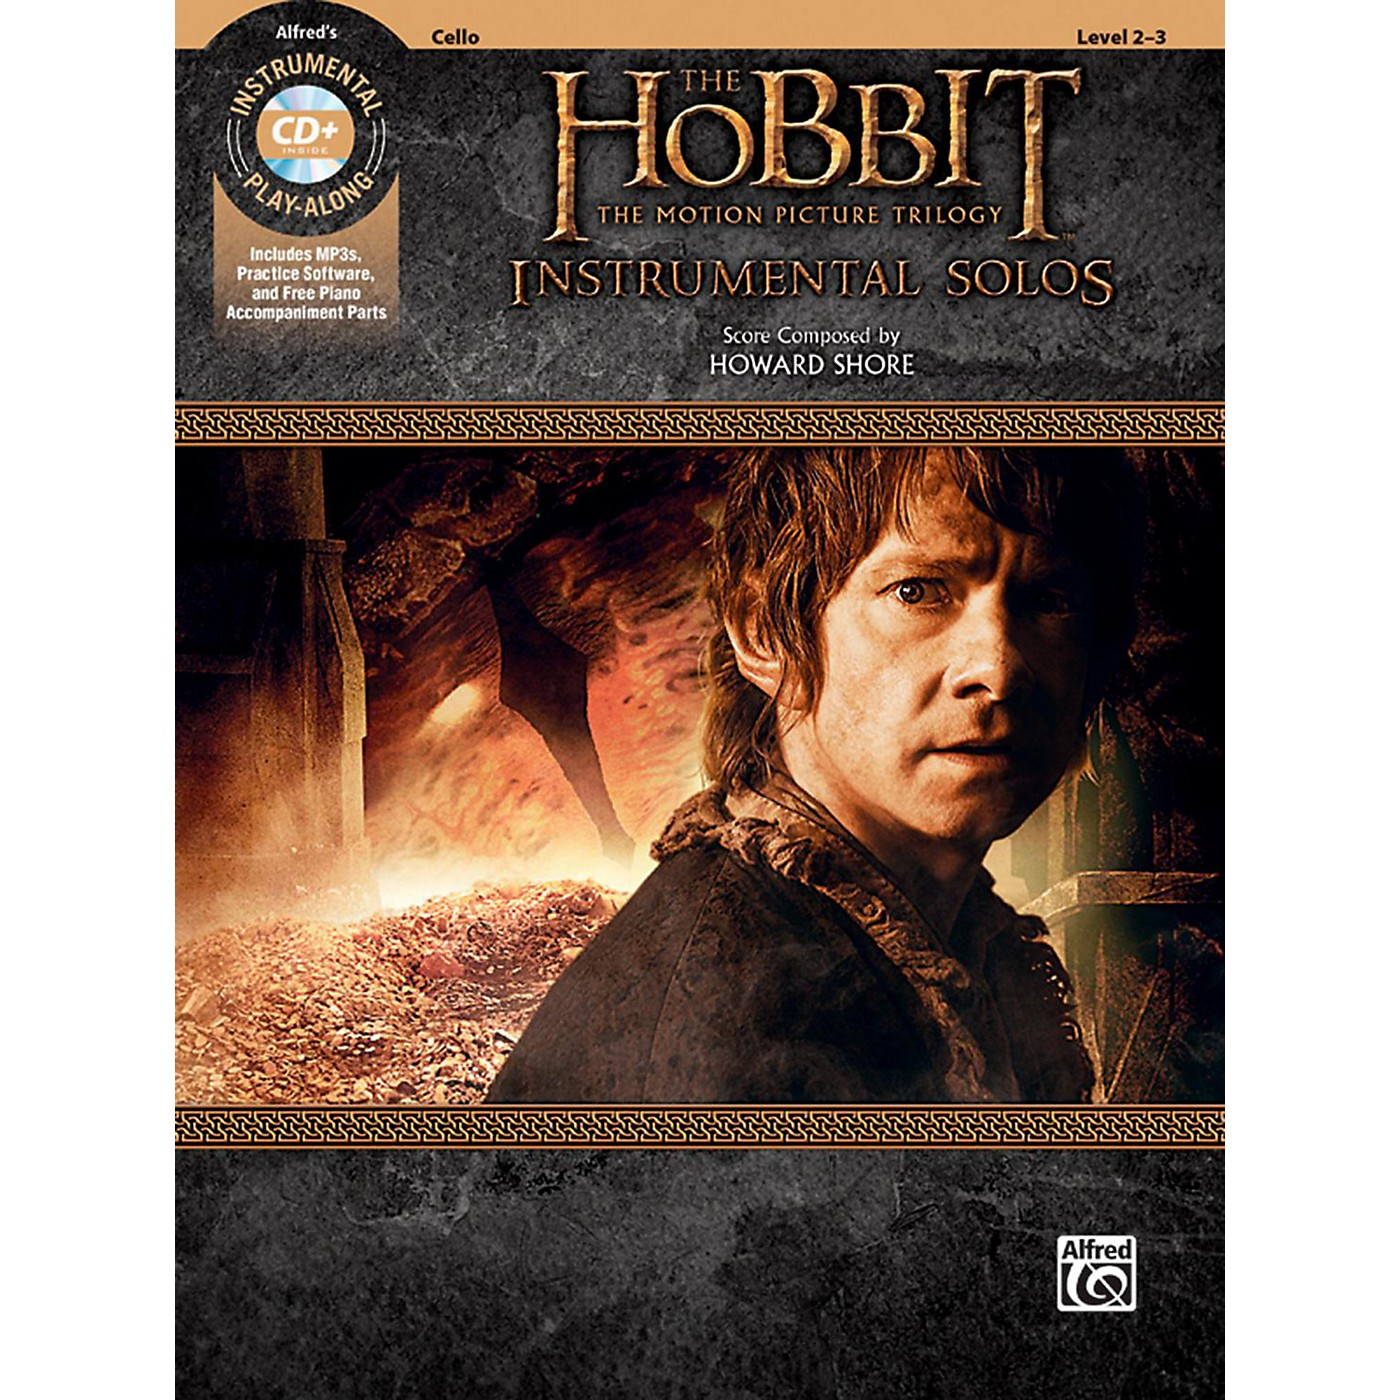 Alfred The Hobbit - The Motion Picture Trilogy Instrumental Solos for Strings Cello Book & CD Level 2-3 Songbook thumbnail